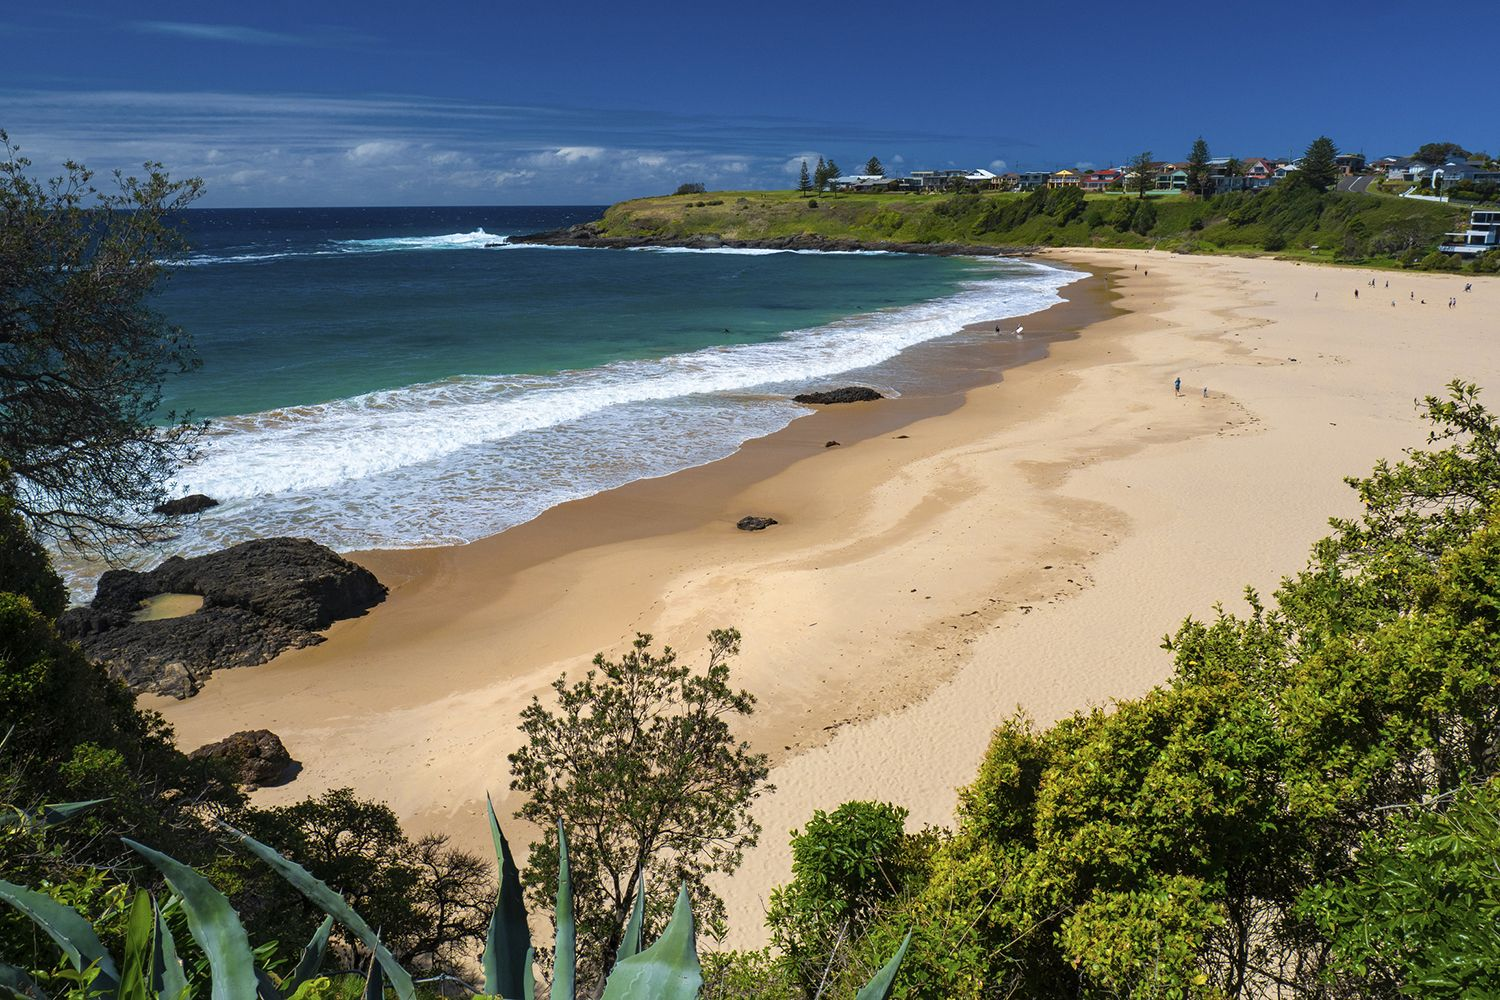 Scenic coastal views from Kendalls Beach, Kiama